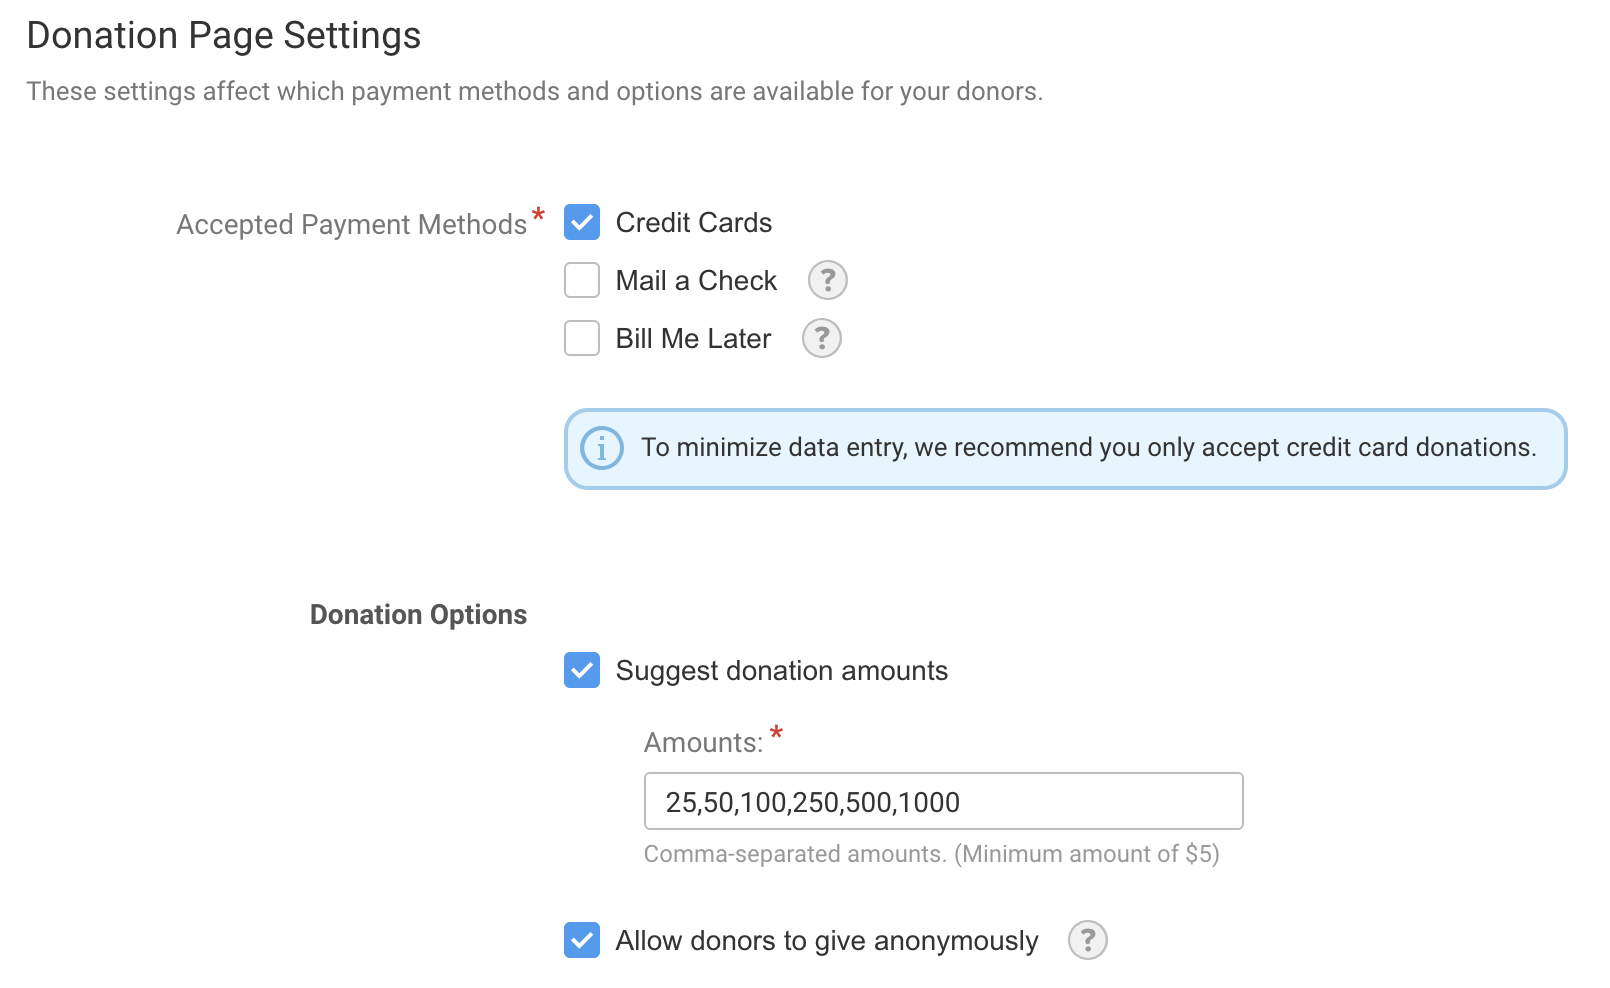 Donation Page Settings